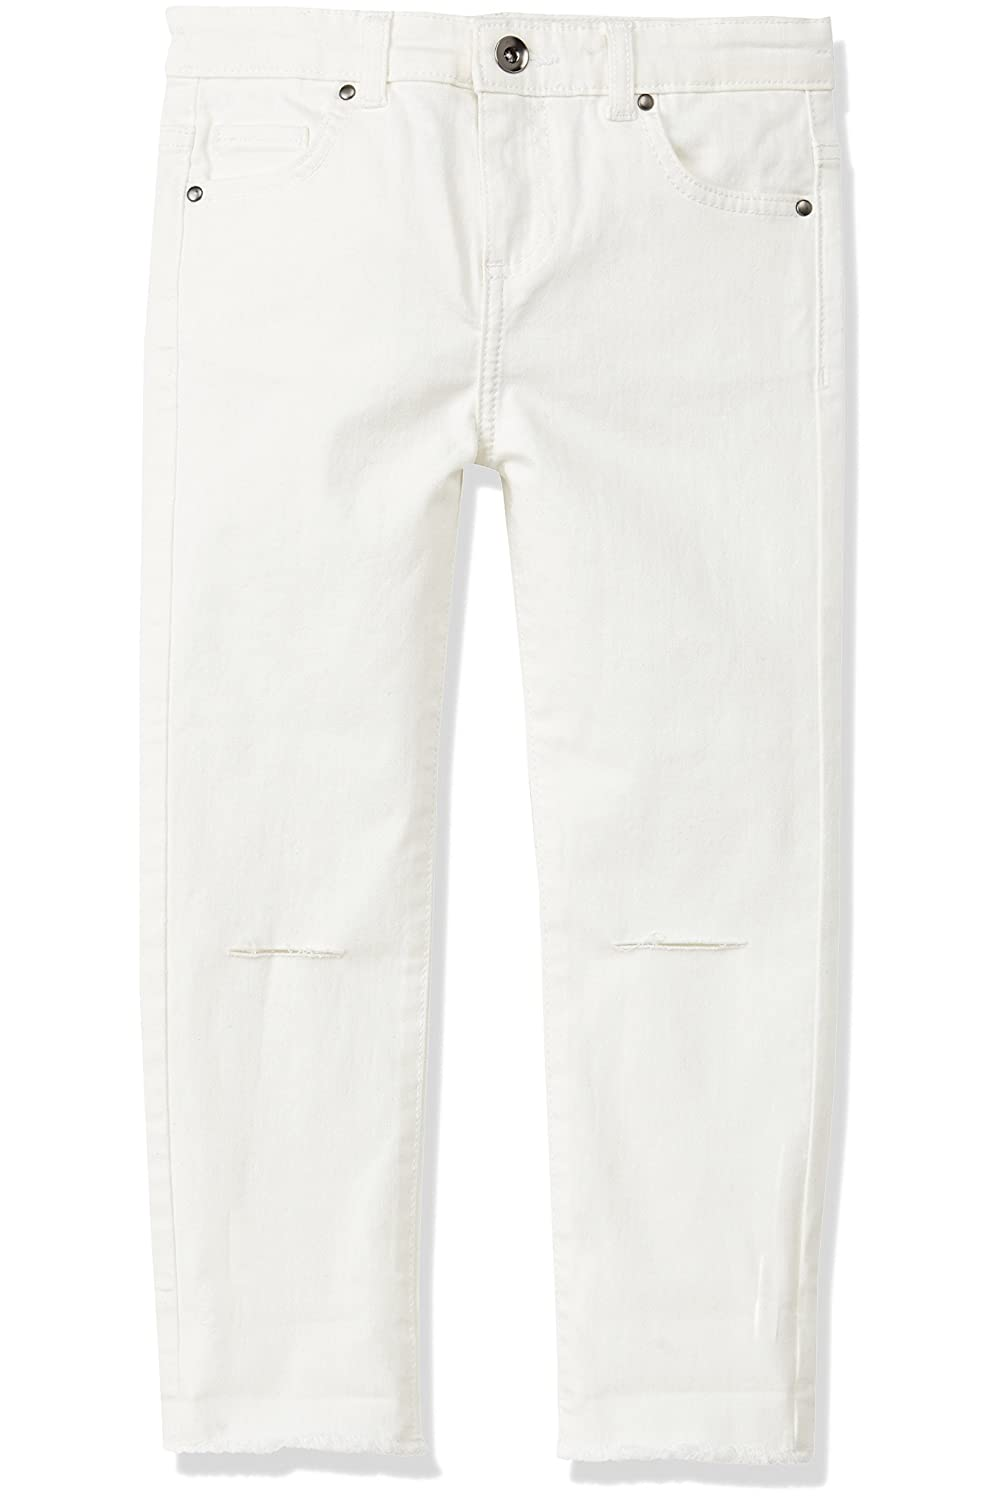 RED WAGON Girl's Jeans with Ripped Knees 2303A